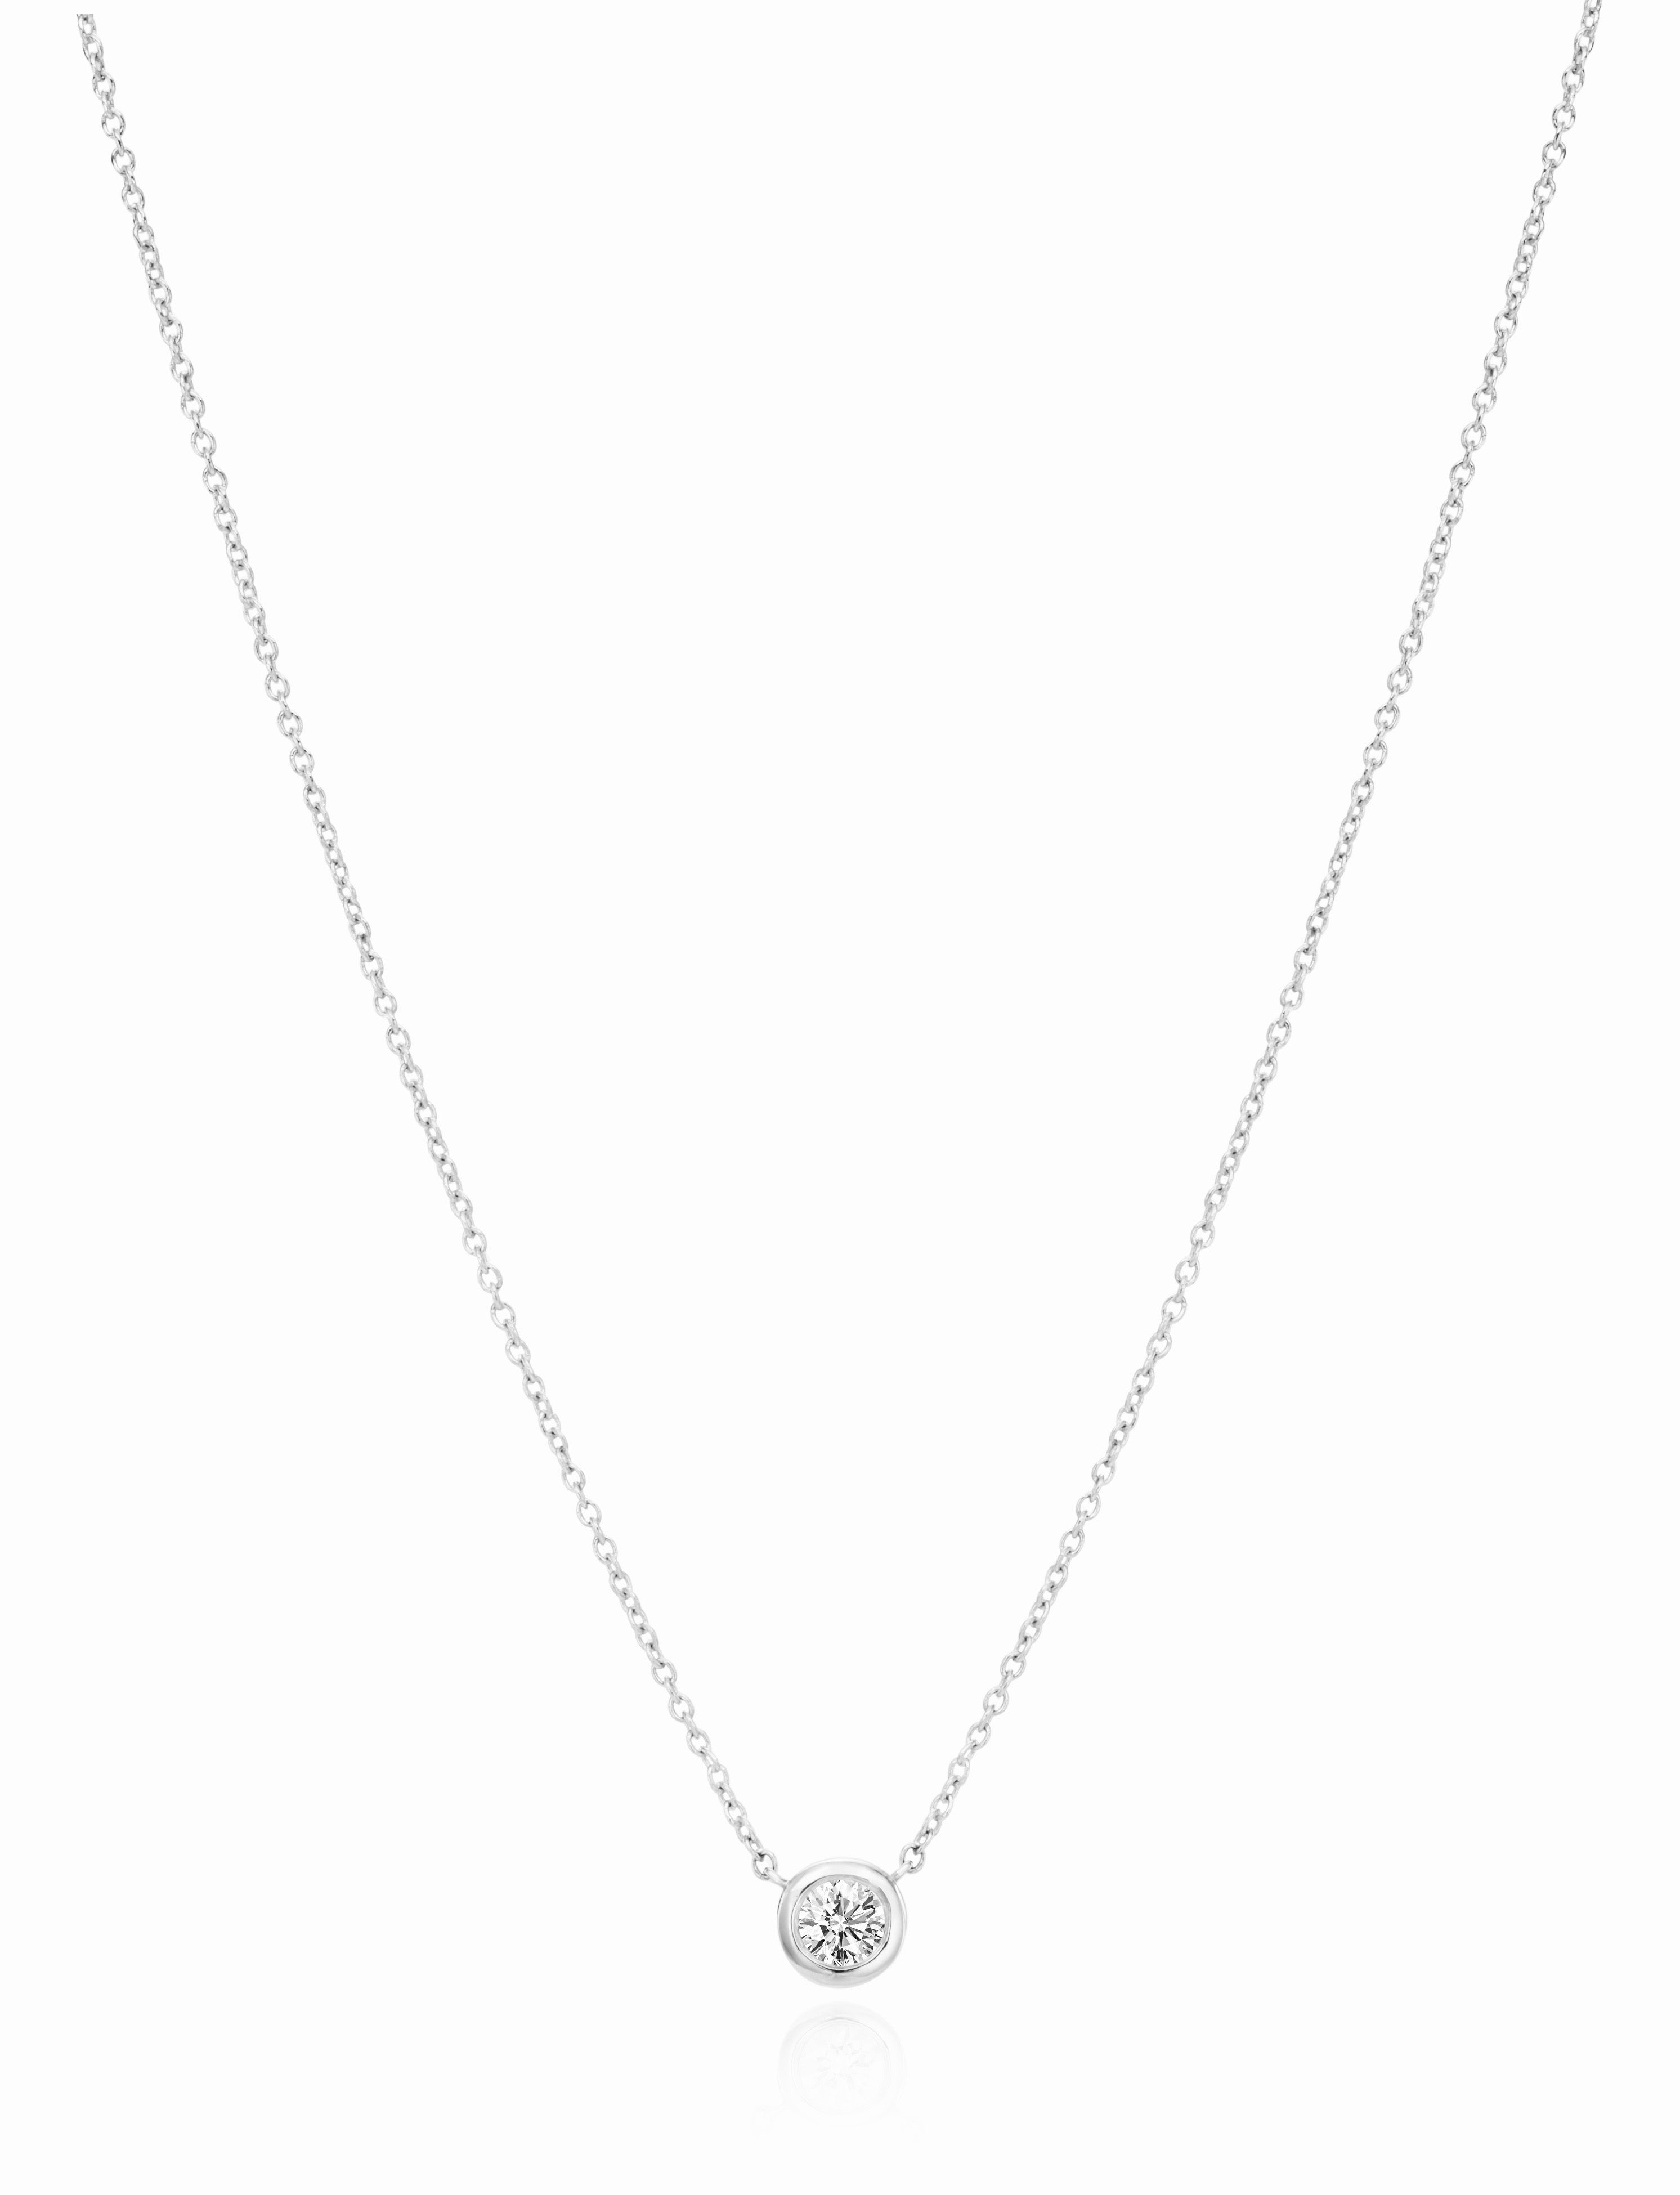 Single .30 ct Diamond Bezel Necklace designed by David Gardner, 18K white gold